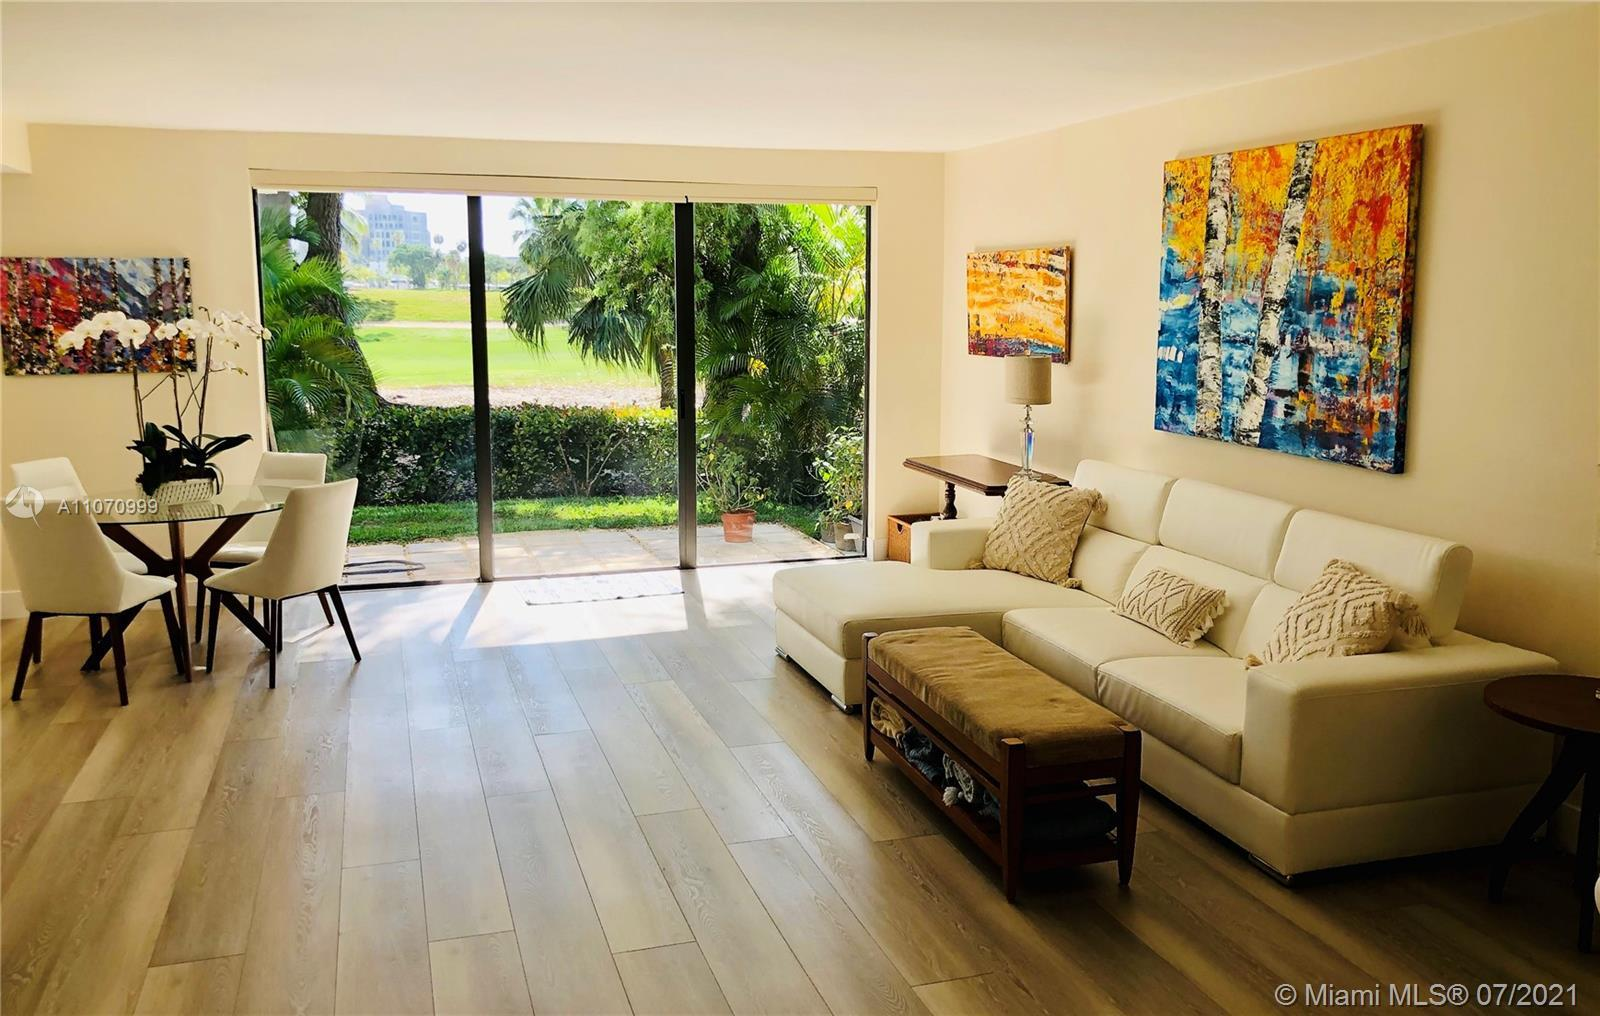 Aventura's best kept secret. Beautifully redesigned and renovated 3 bedroom plus extra room that can